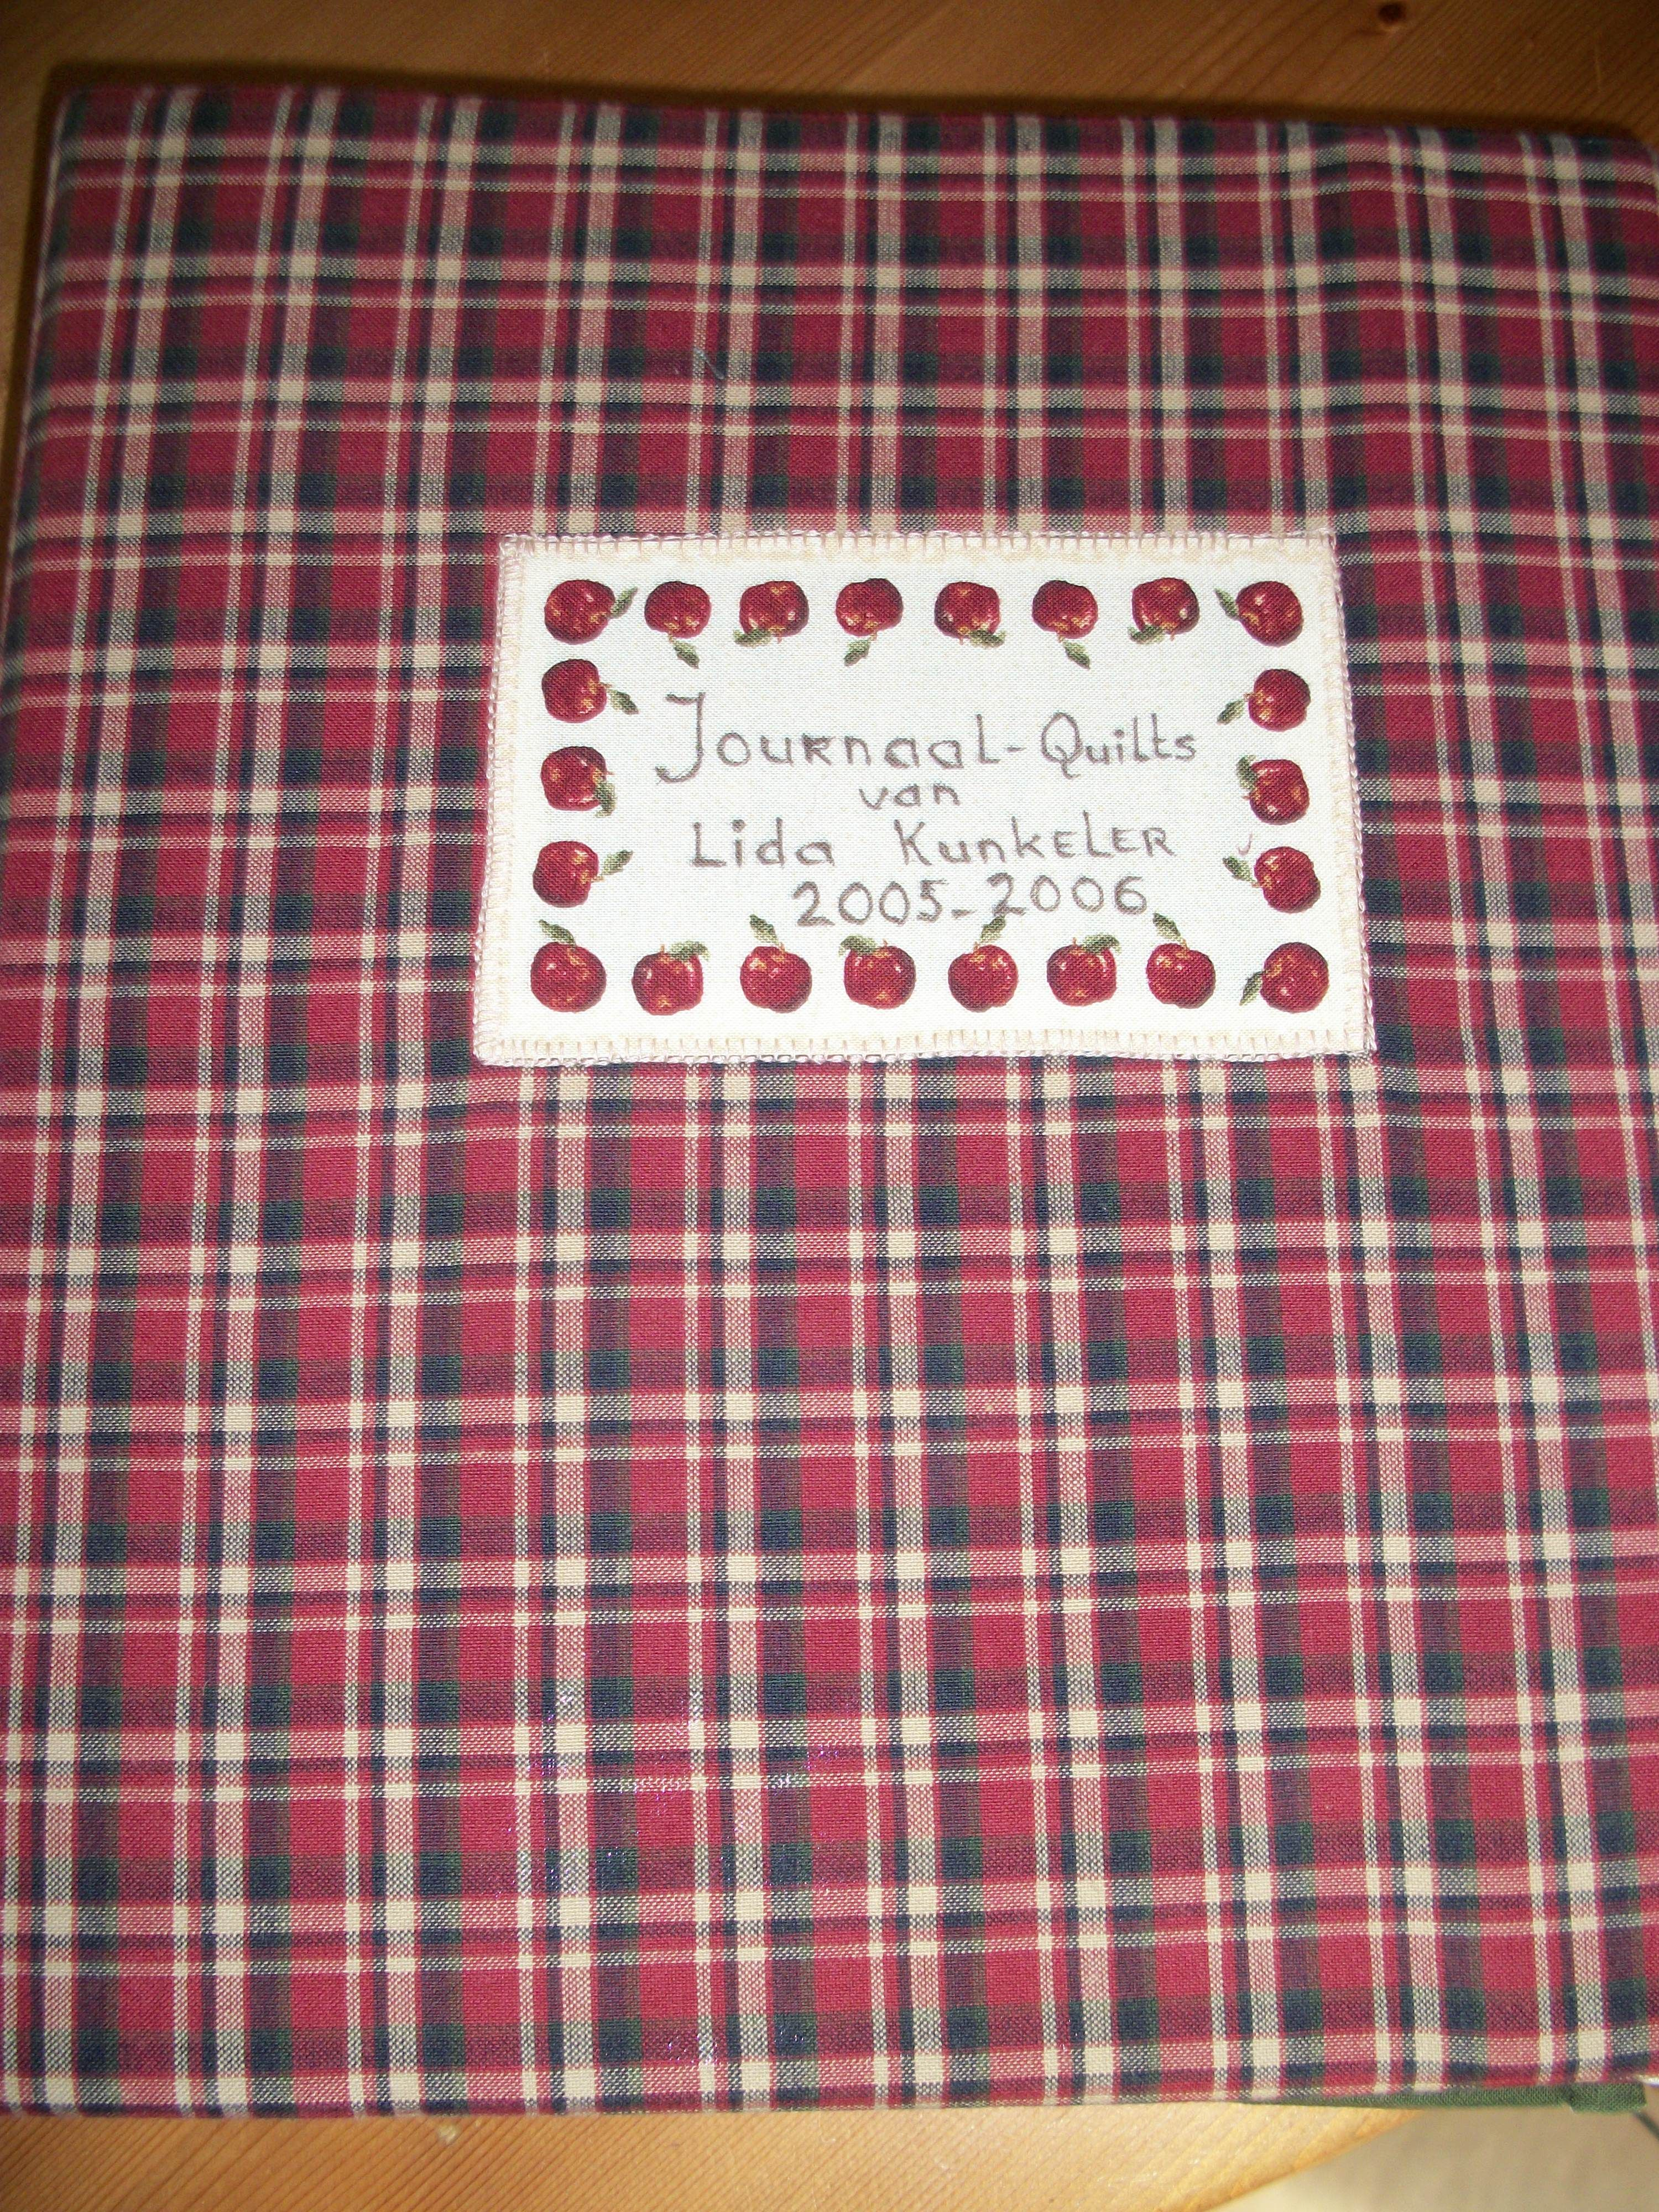 Book with diaryquilts